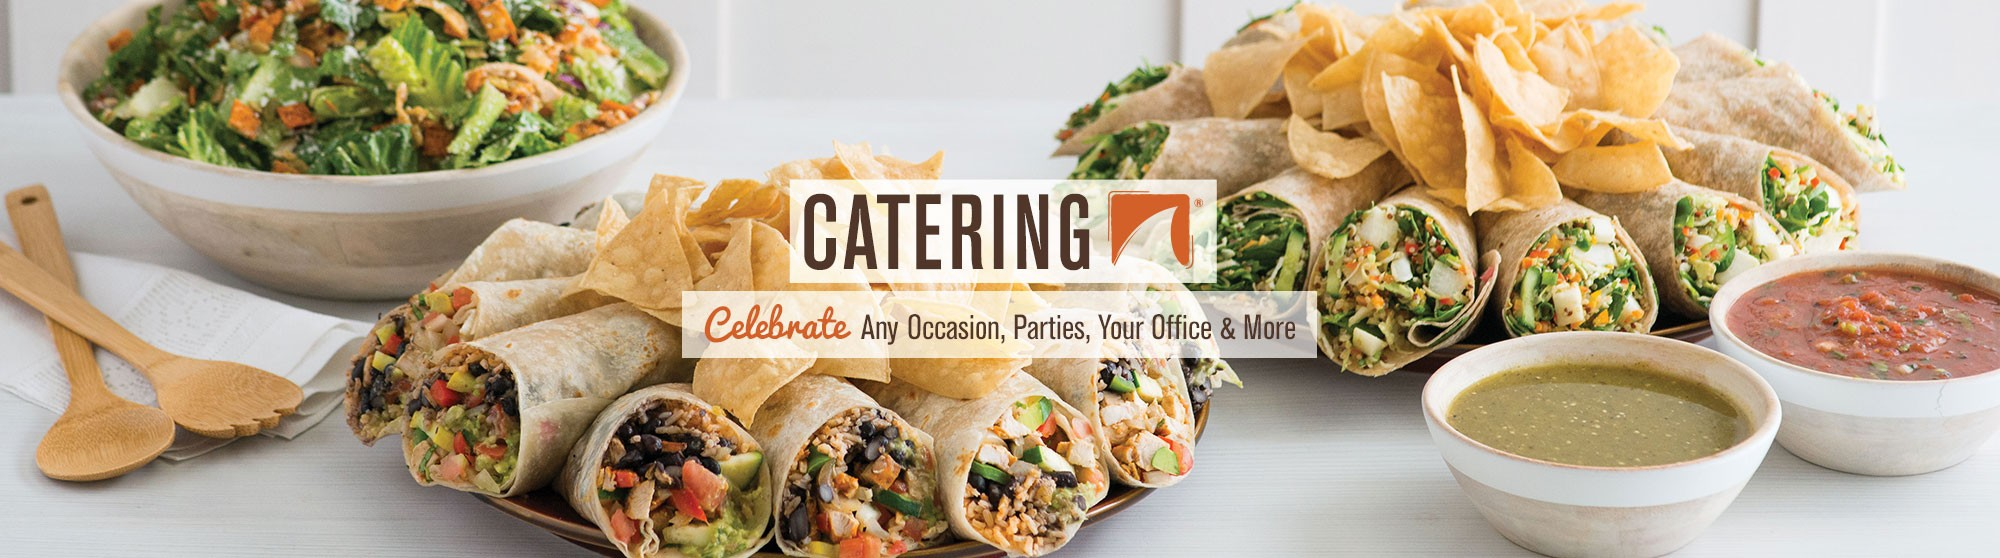 Catering for Any Occasion